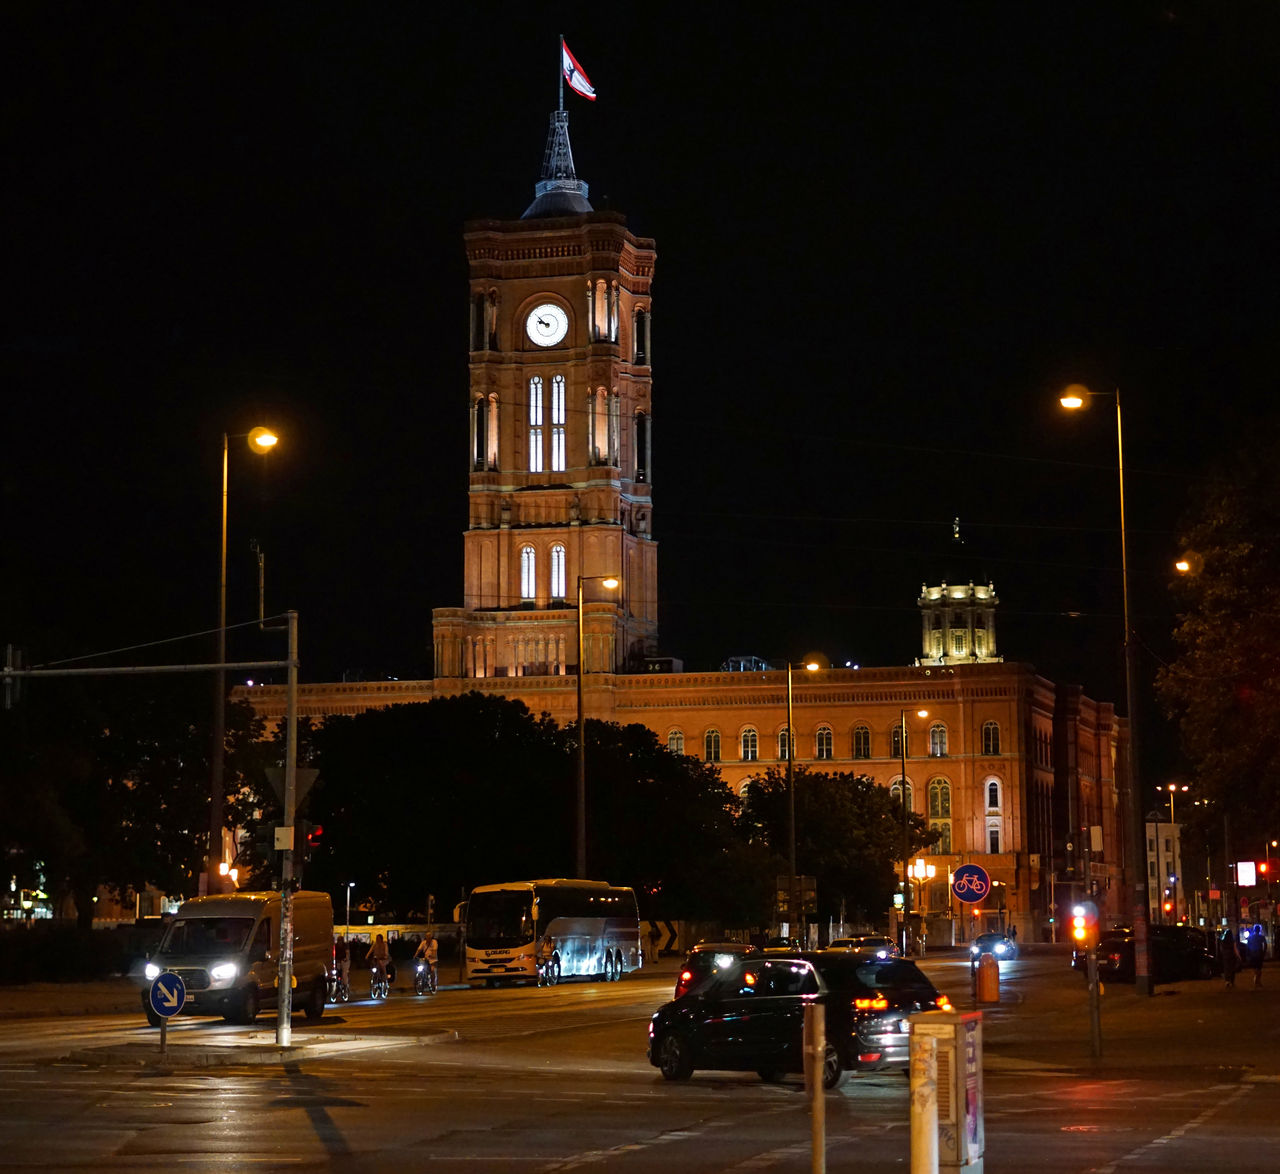 night, illuminated, architecture, mode of transportation, transportation, built structure, car, city, motor vehicle, building exterior, land vehicle, street, tower, clock tower, building, street light, motion, travel, sky, road, clock